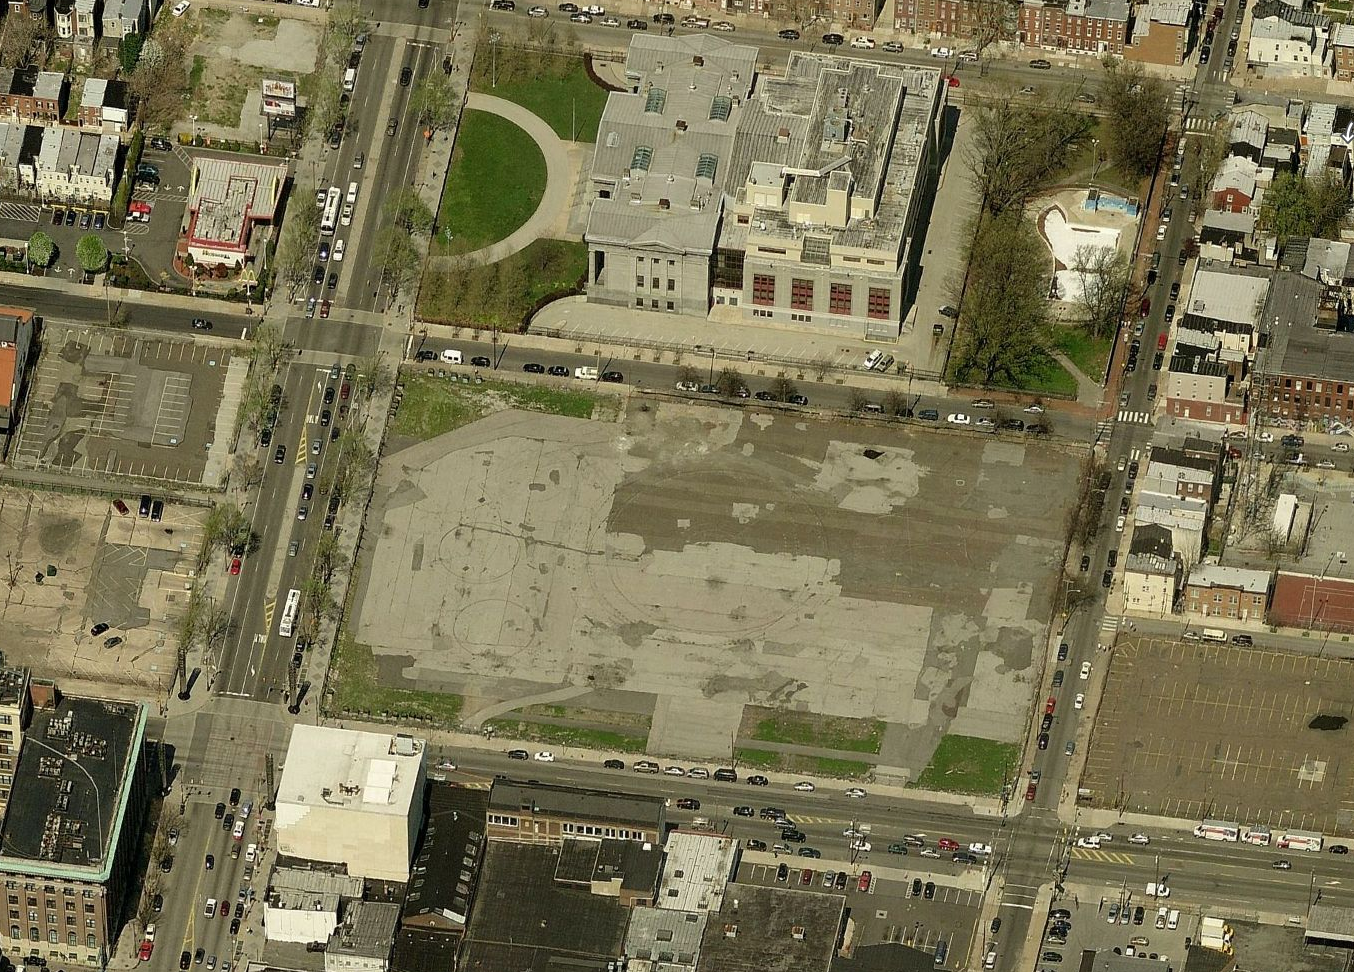 Development site at Broad and Washington | Bing Maps